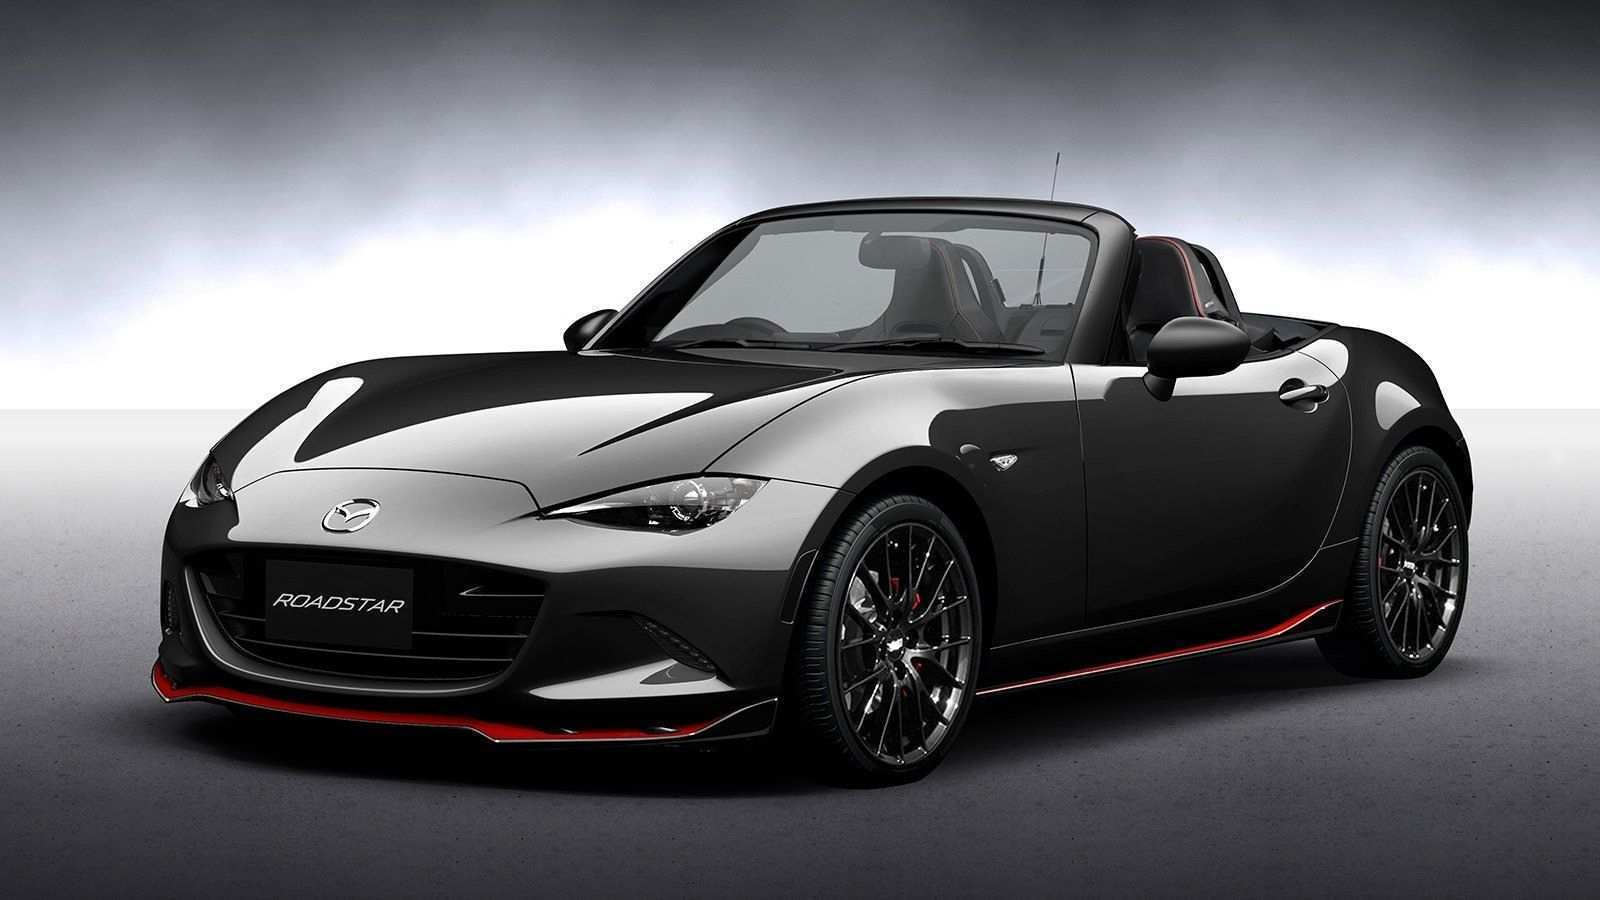 42 Best Review 2020 Mazda MX 5 Miata First Drive with 2020 Mazda MX 5 Miata